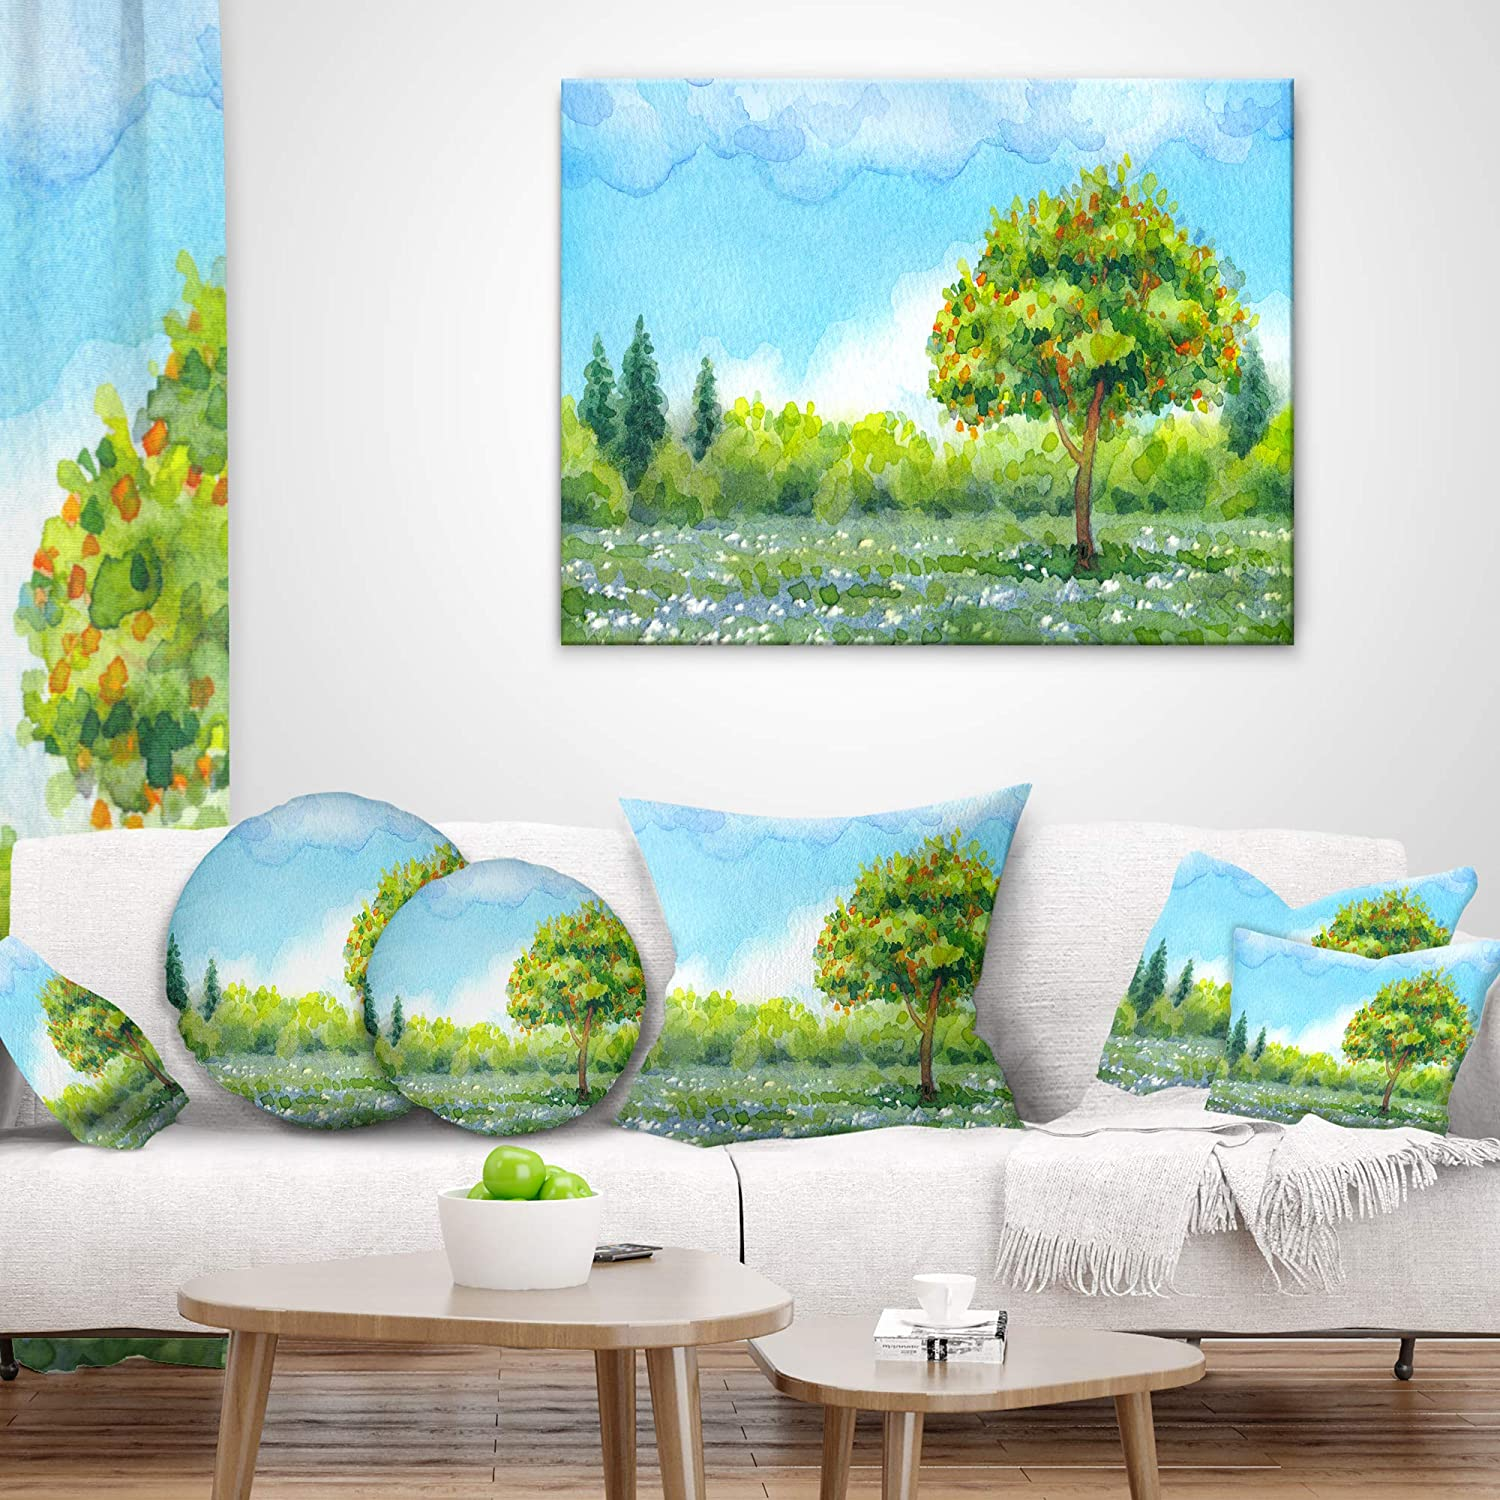 Designart CU7314-26-26 Tree in Spring Watercolor Painting Landscape Printed Cushion Cover for Living Room 26 x 26 Sofa Throw Pillow